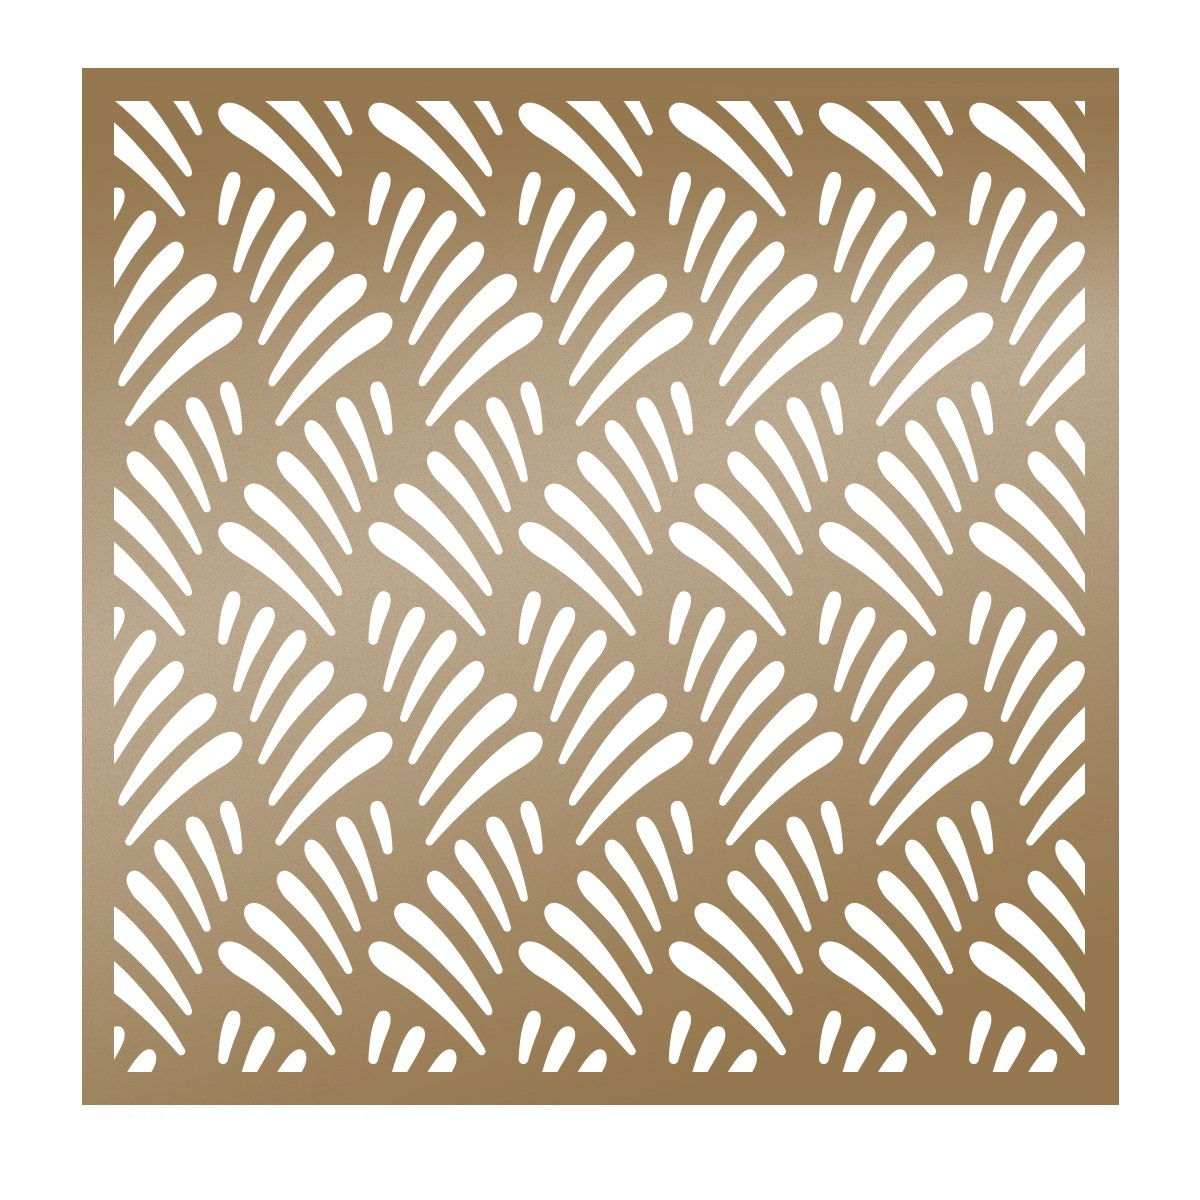 Artdeco Creations ULT157829 Ultimate Crafts The Ritz Stencil 6